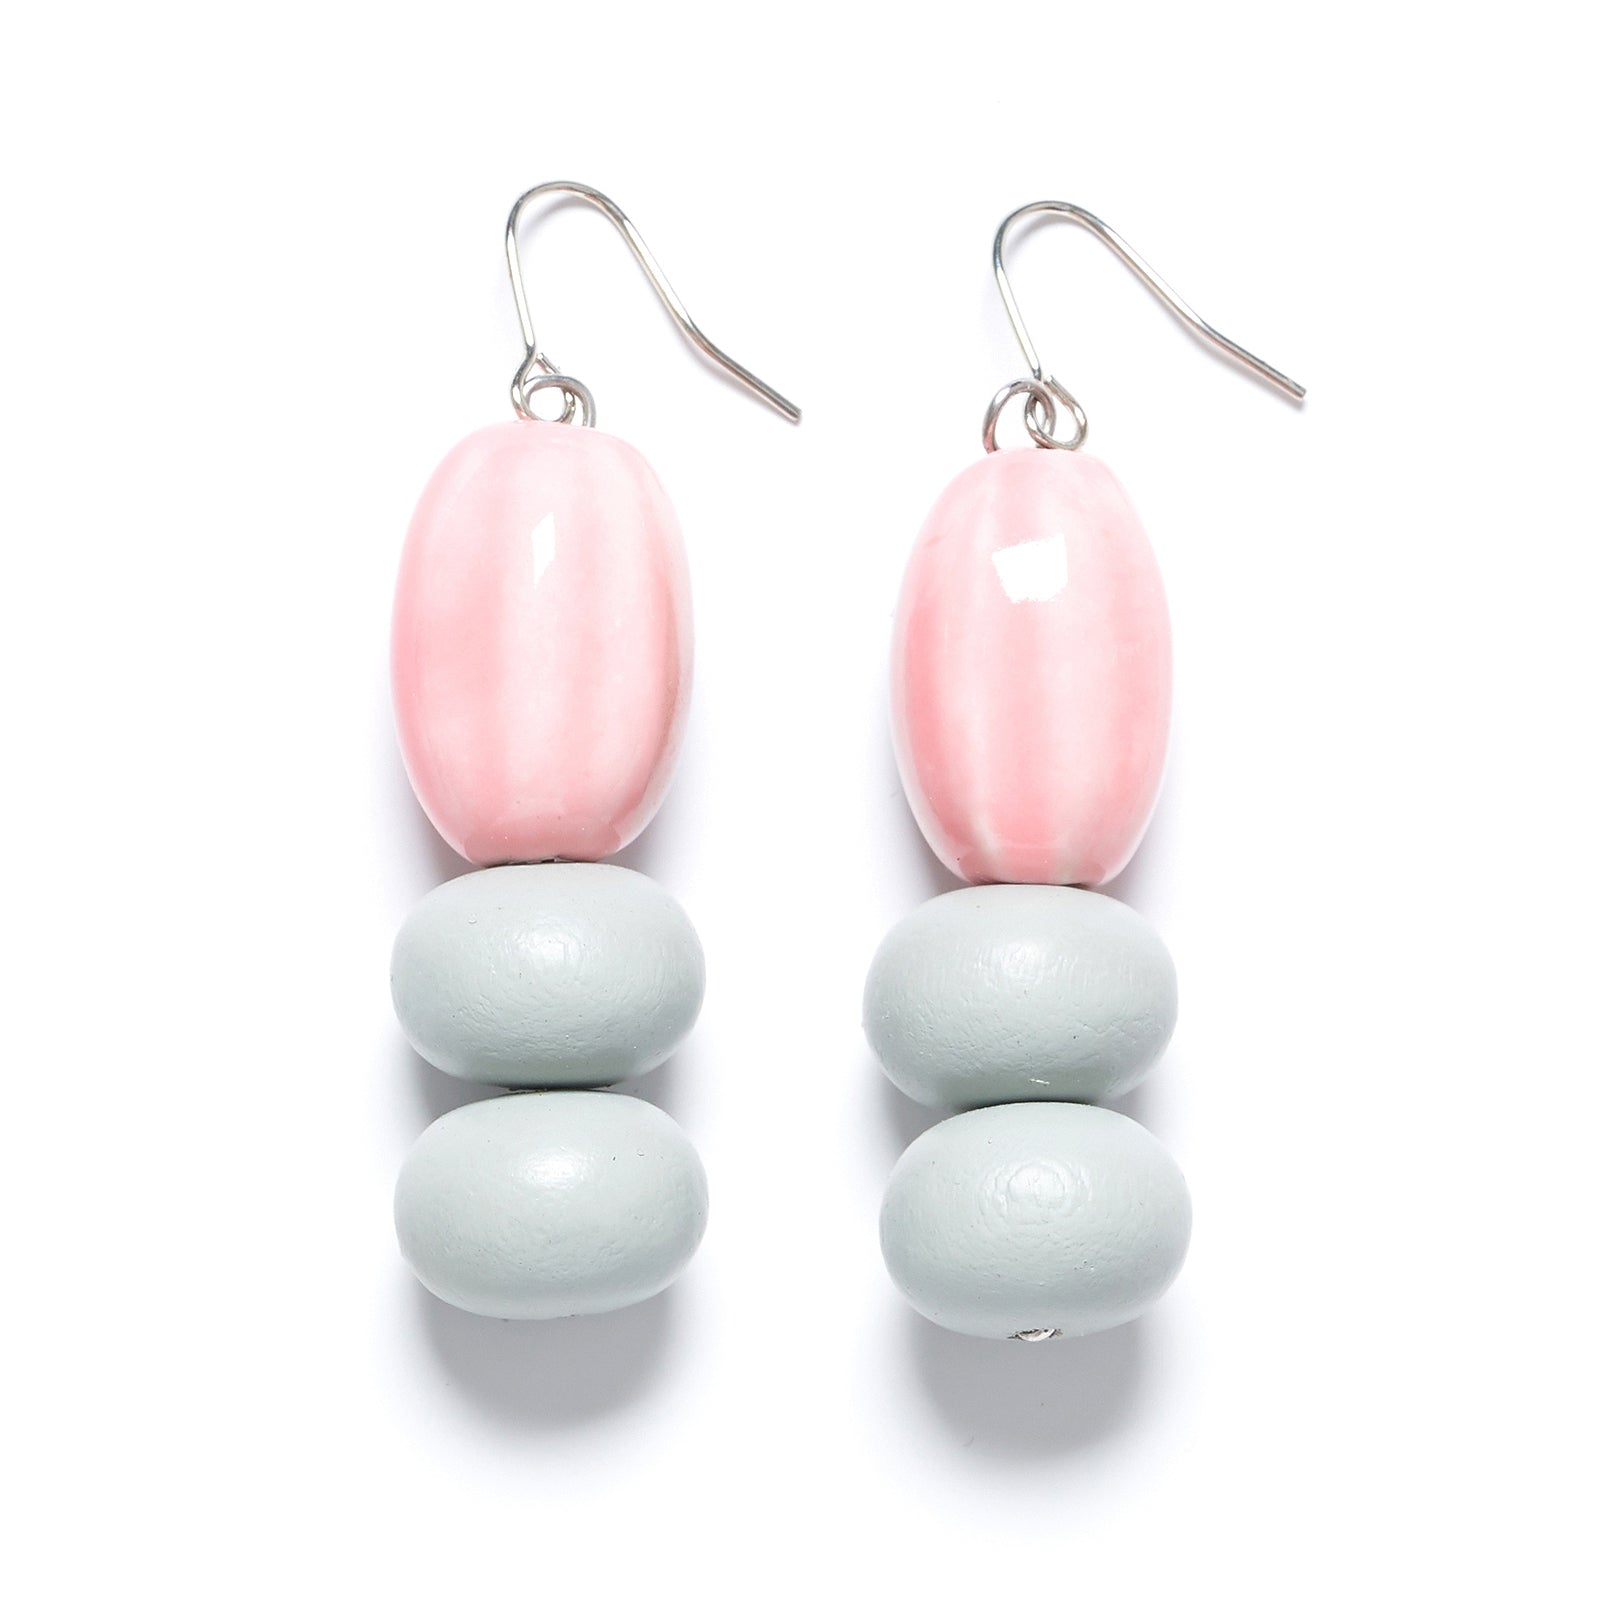 Triple Drop ceramic earring